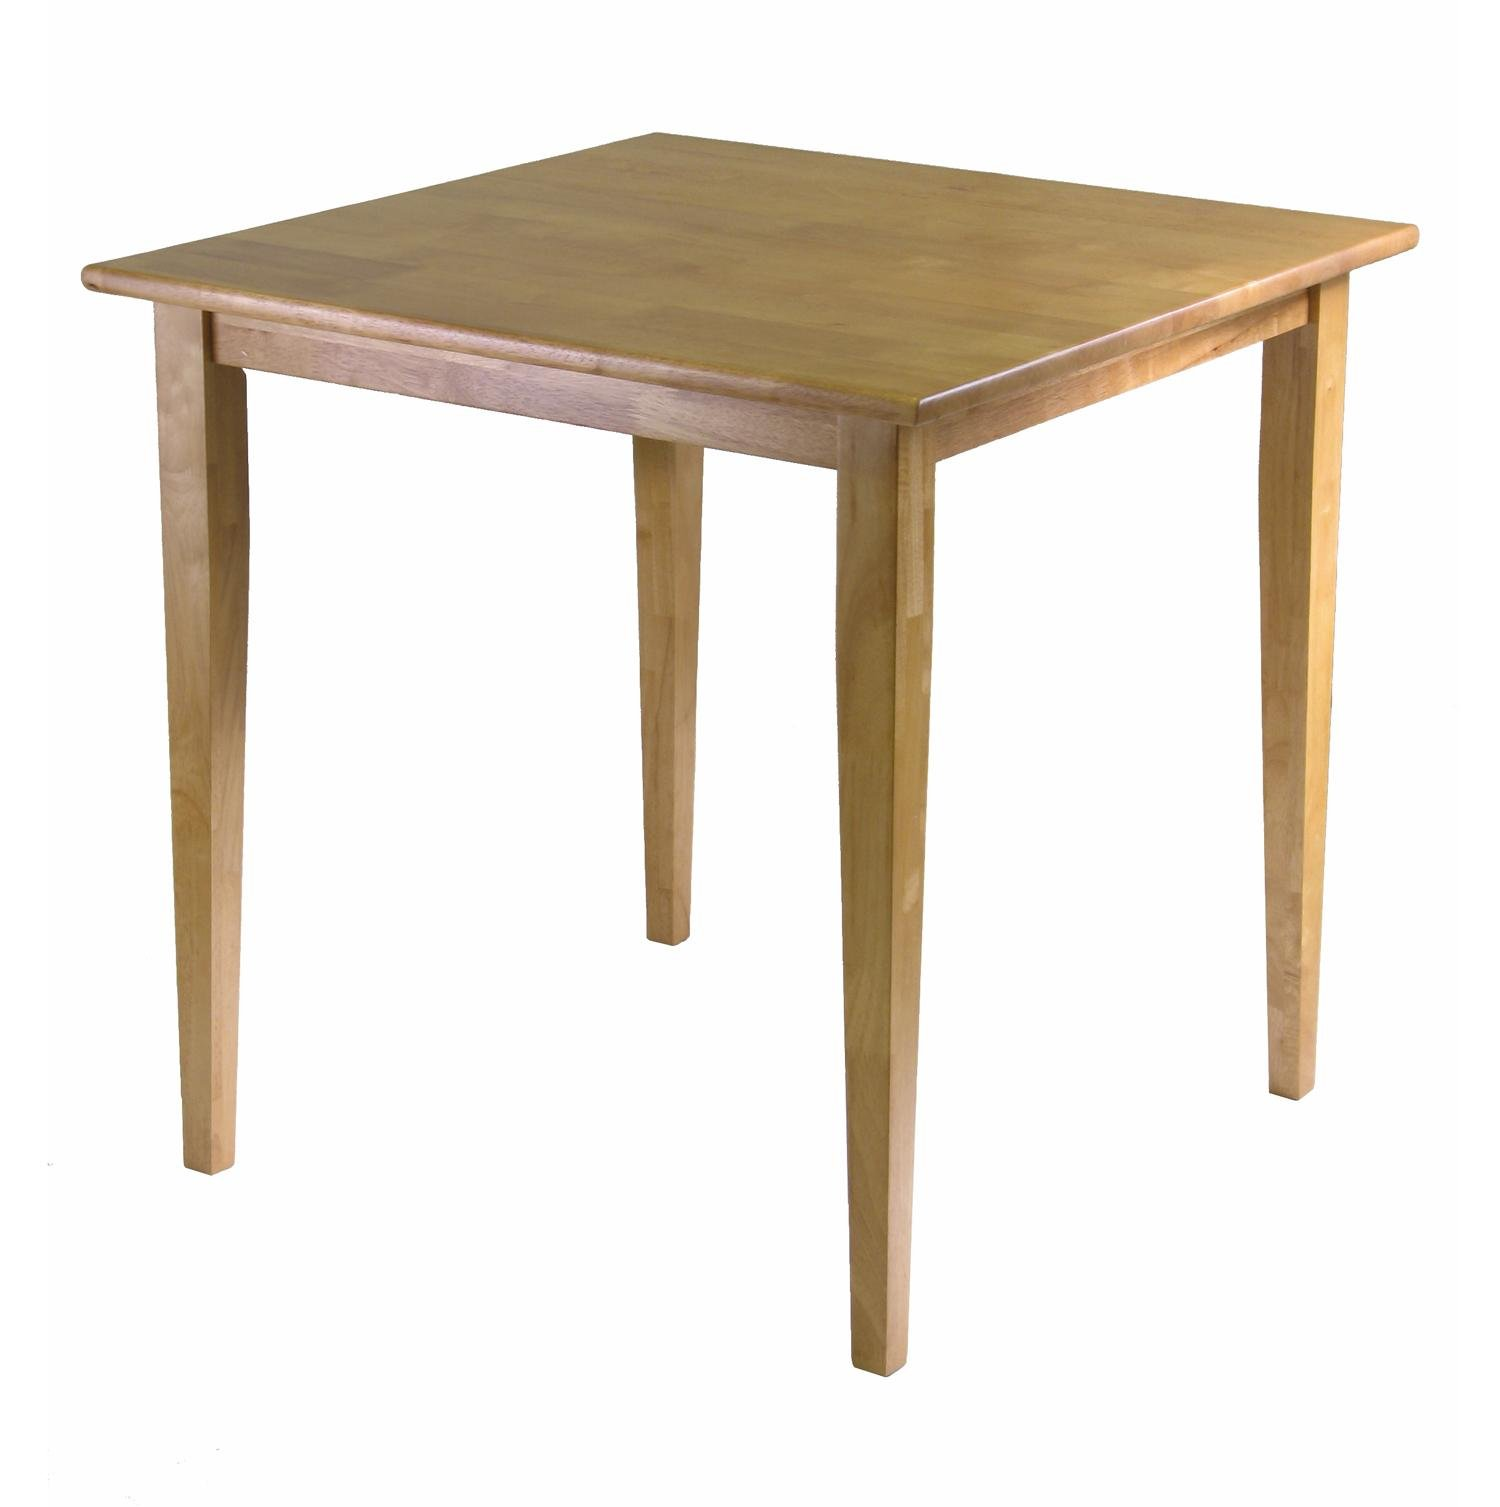 Winsome Wood Groveland Square Dining Table with Shaker legs, Light Oak Finish